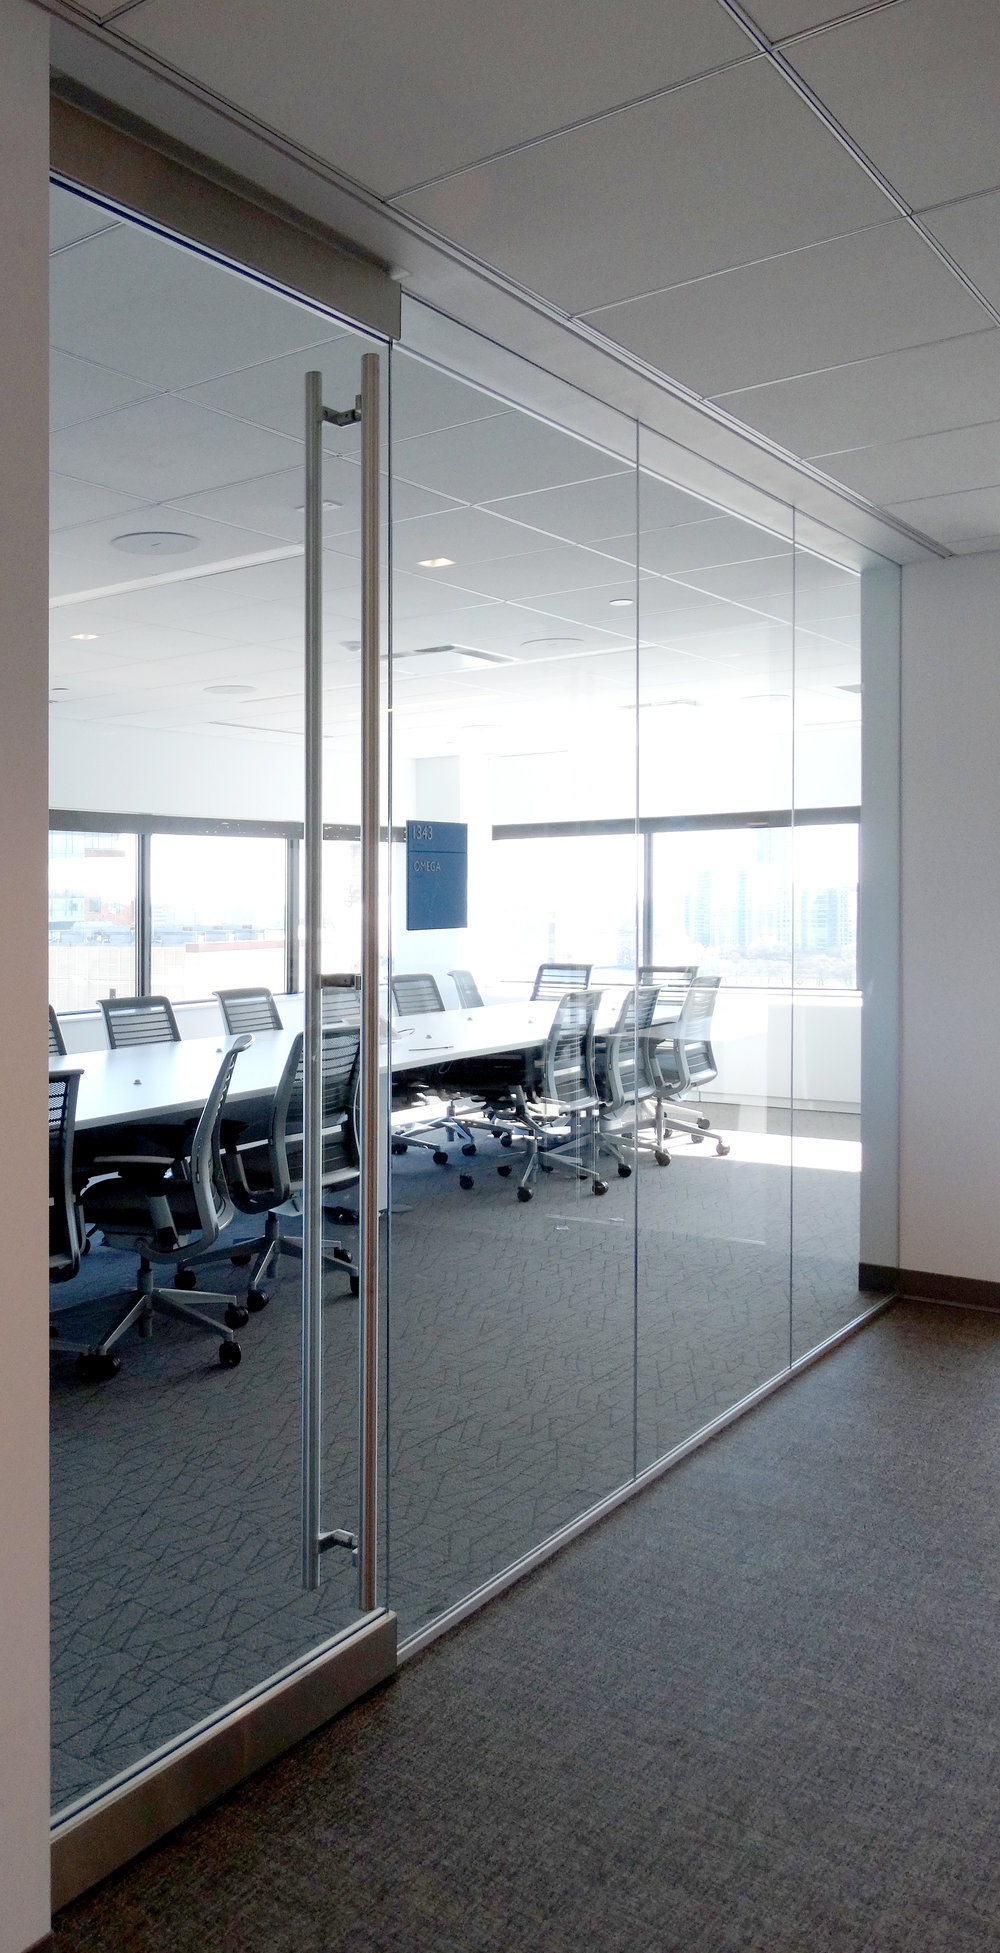 Illume Frameless Glass Conference Room Frameless Glass Rail Door - Spaceworks AI.jpg